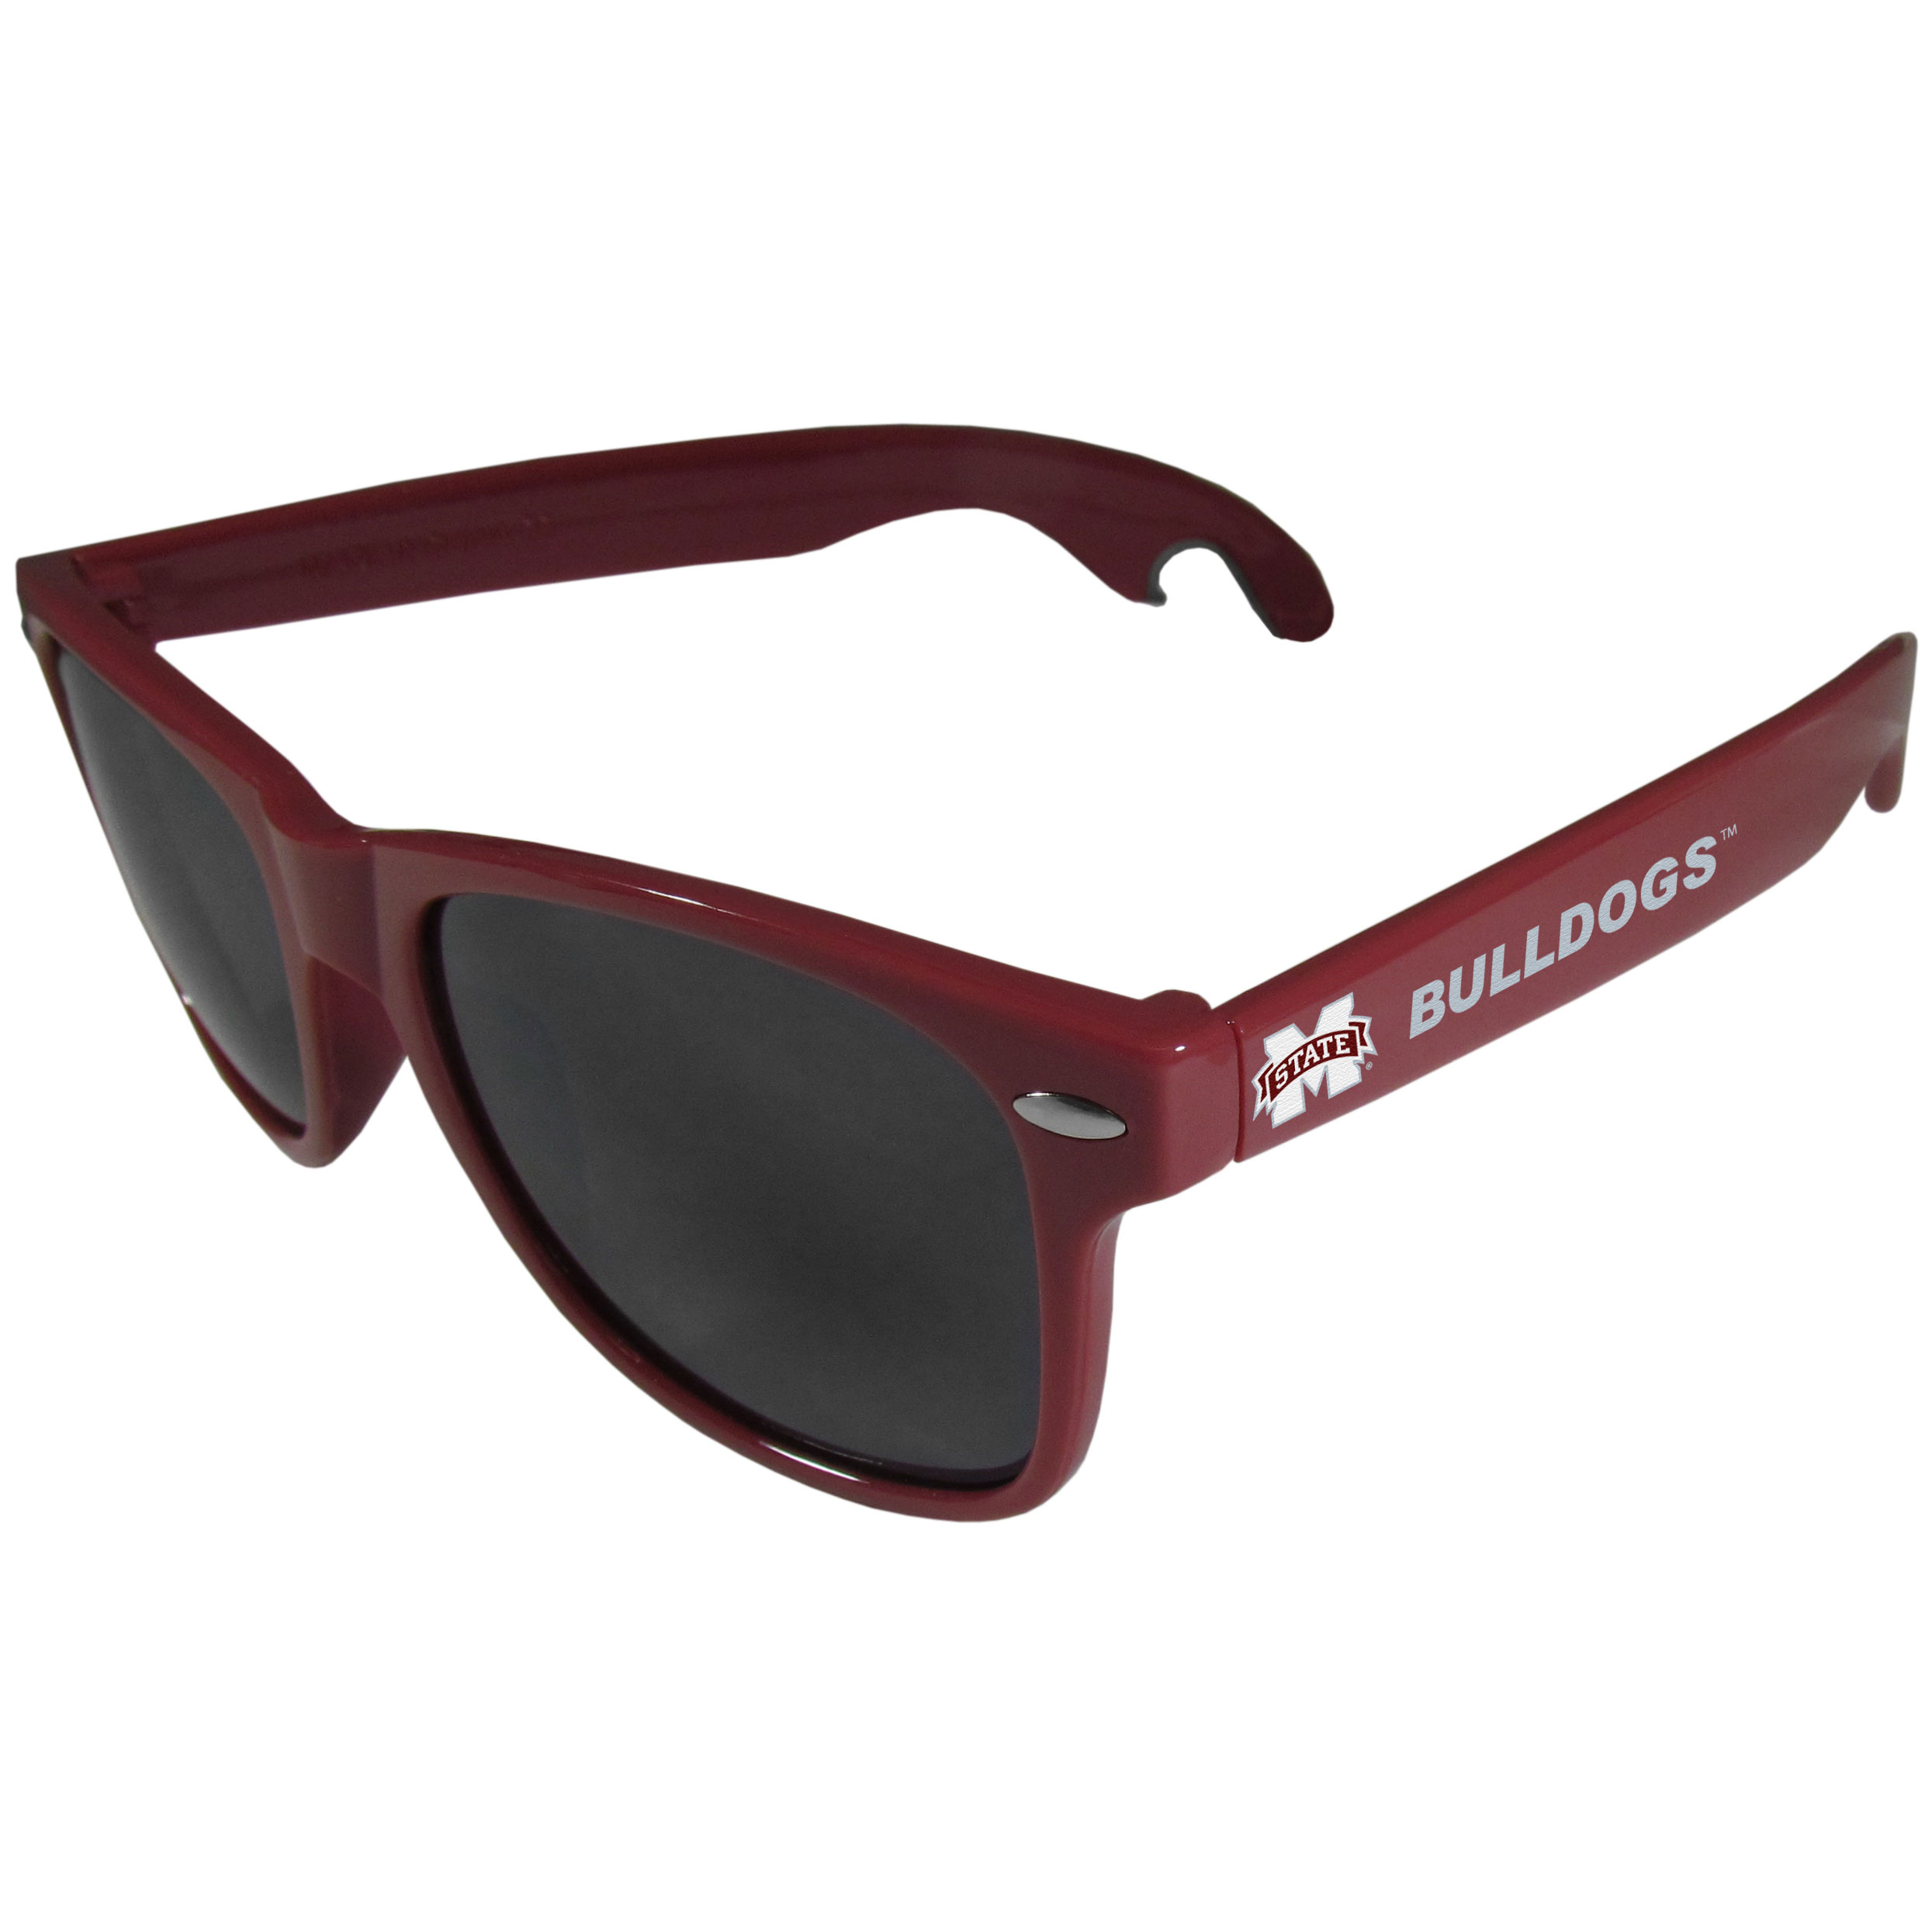 Mississippi St. Bulldogs Beachfarer Bottle Opener Sunglasses, Maroon - Seriously, these sunglasses open bottles! Keep the party going with these amazing Mississippi St. Bulldogs bottle opener sunglasses. The stylish retro frames feature team designs on the arms and functional bottle openers on the end of the arms. Whether you are at the beach or having a backyard BBQ on game day, these shades will keep your eyes protected with 100% UVA/UVB protection and keep you hydrated with the handy bottle opener arms.